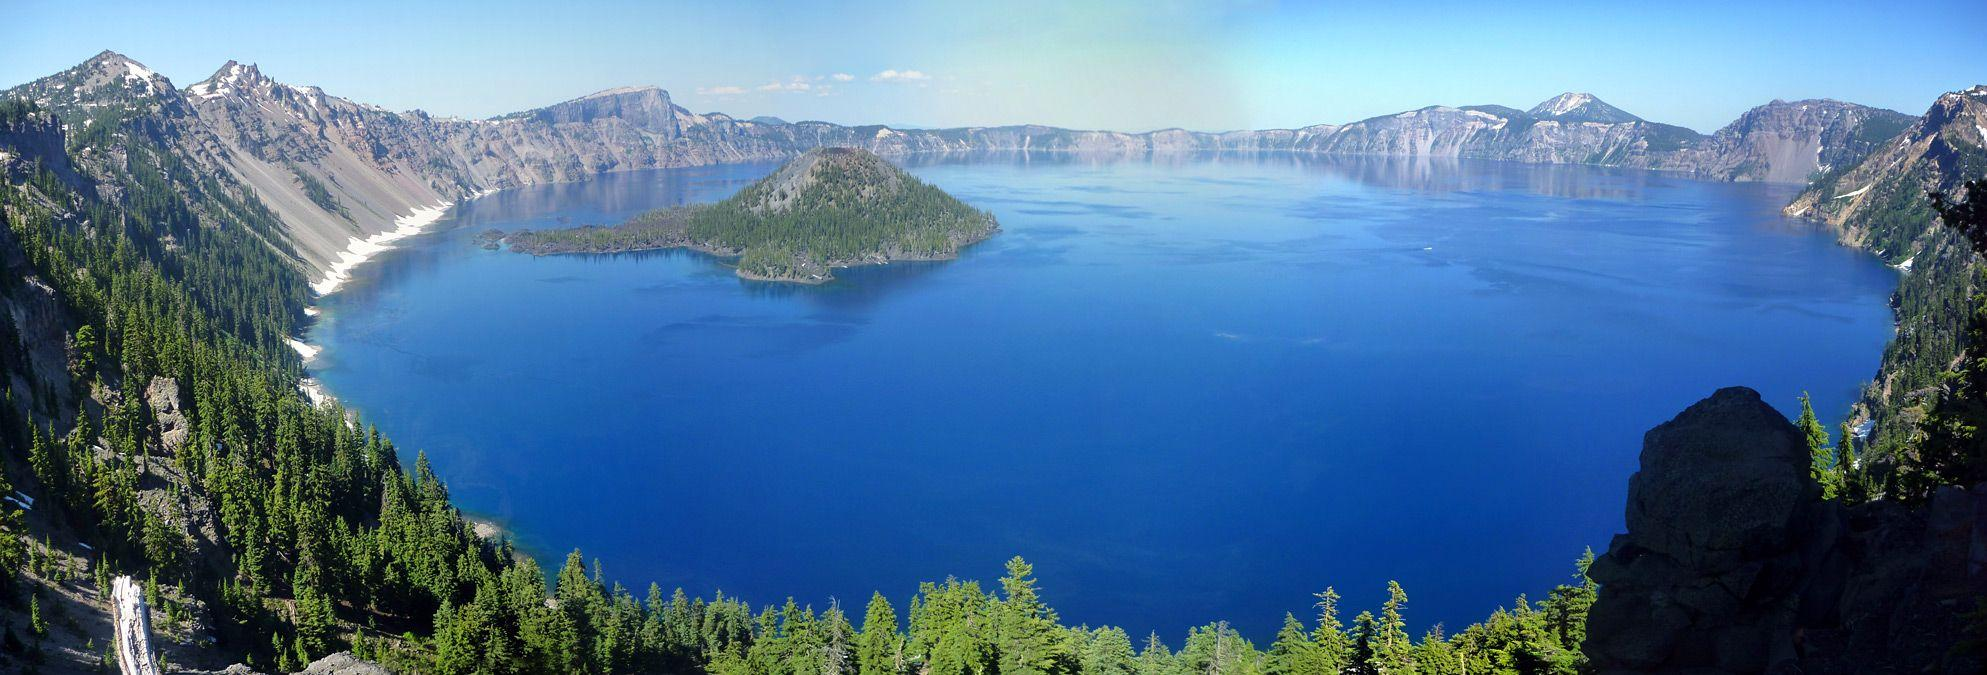 Gallery For > Crater Lake National Park Wallpapers